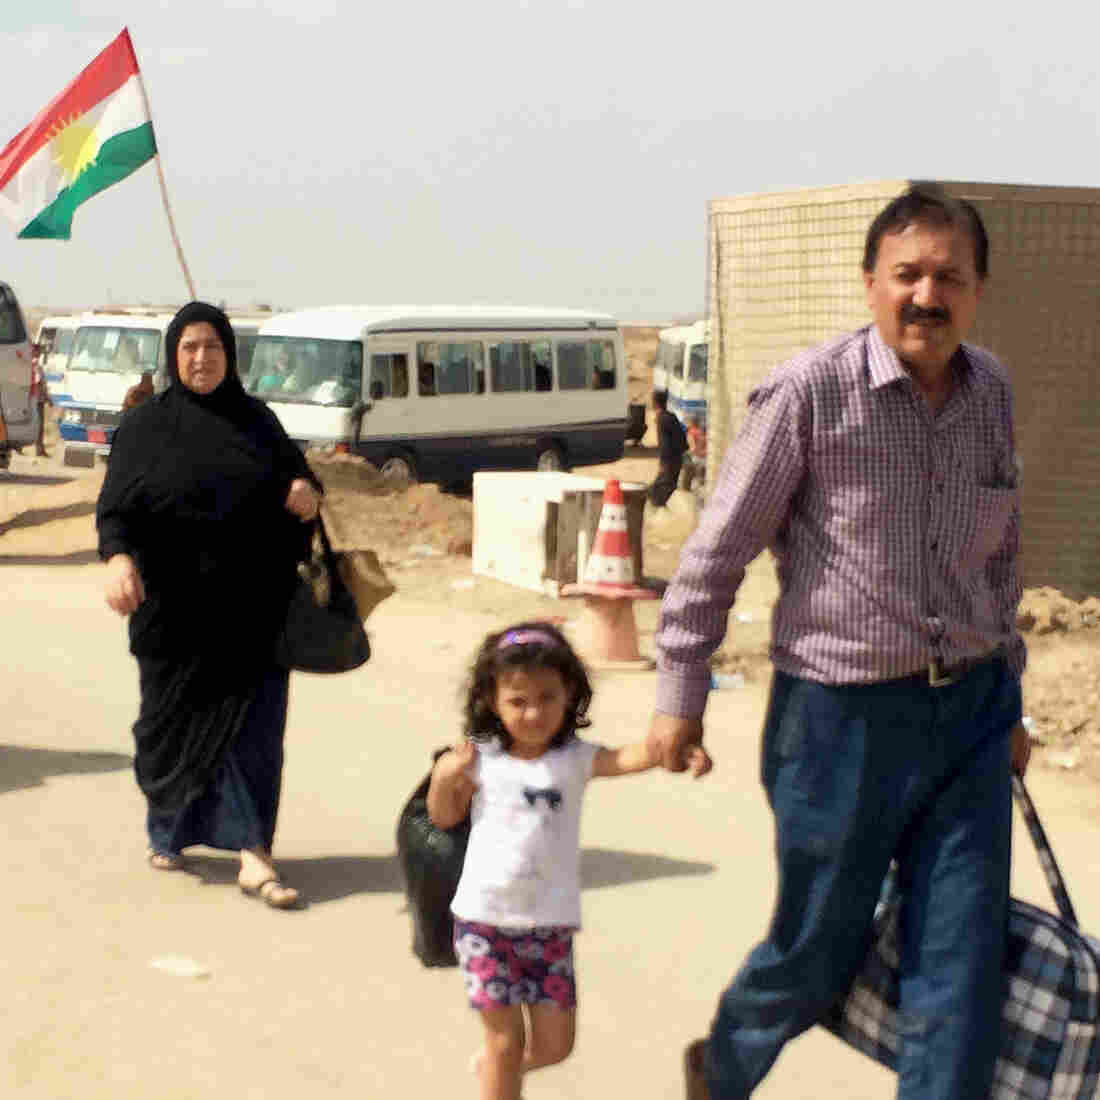 The Artificial Boundary That Divides Iraq